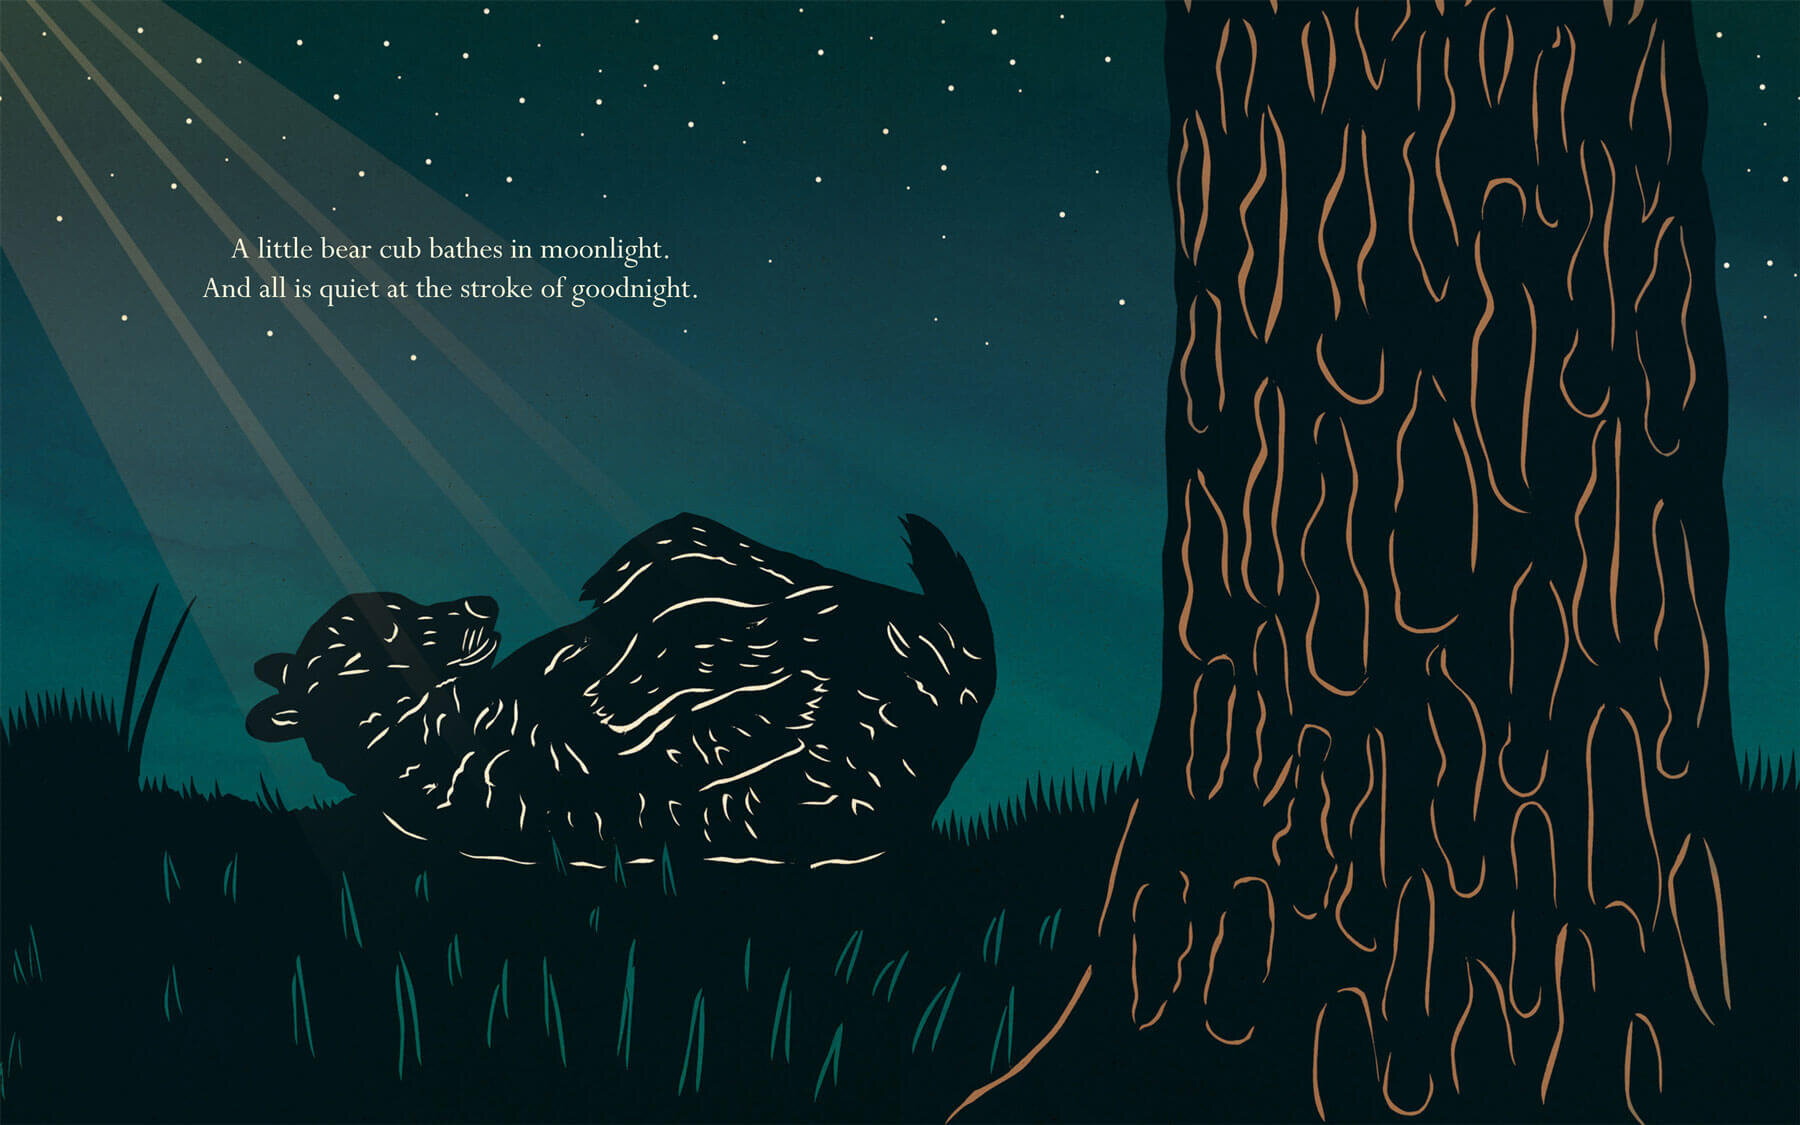 Silhouette of a bear club sleeping under a starry sky created by silhouette artist Clay Rice